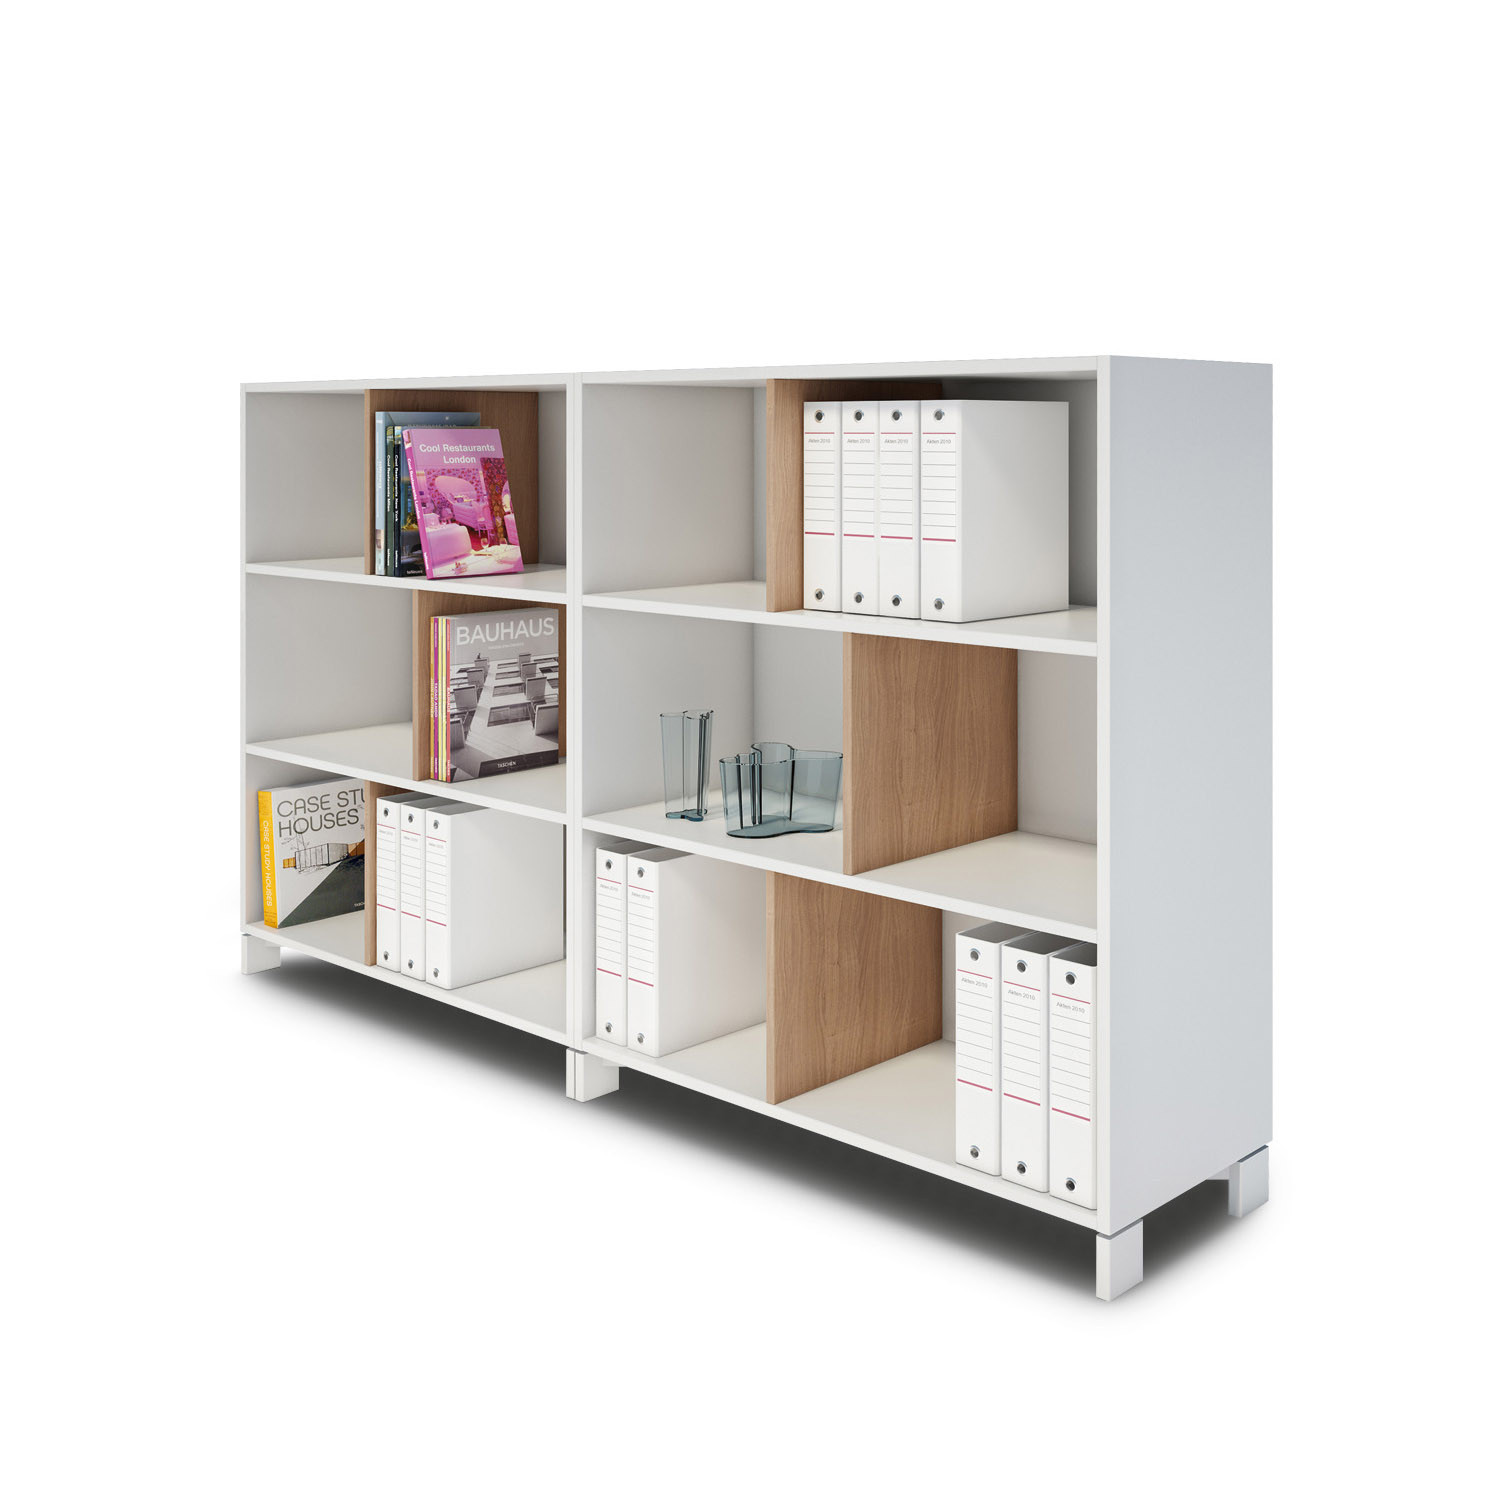 Intavis Storage Shelving